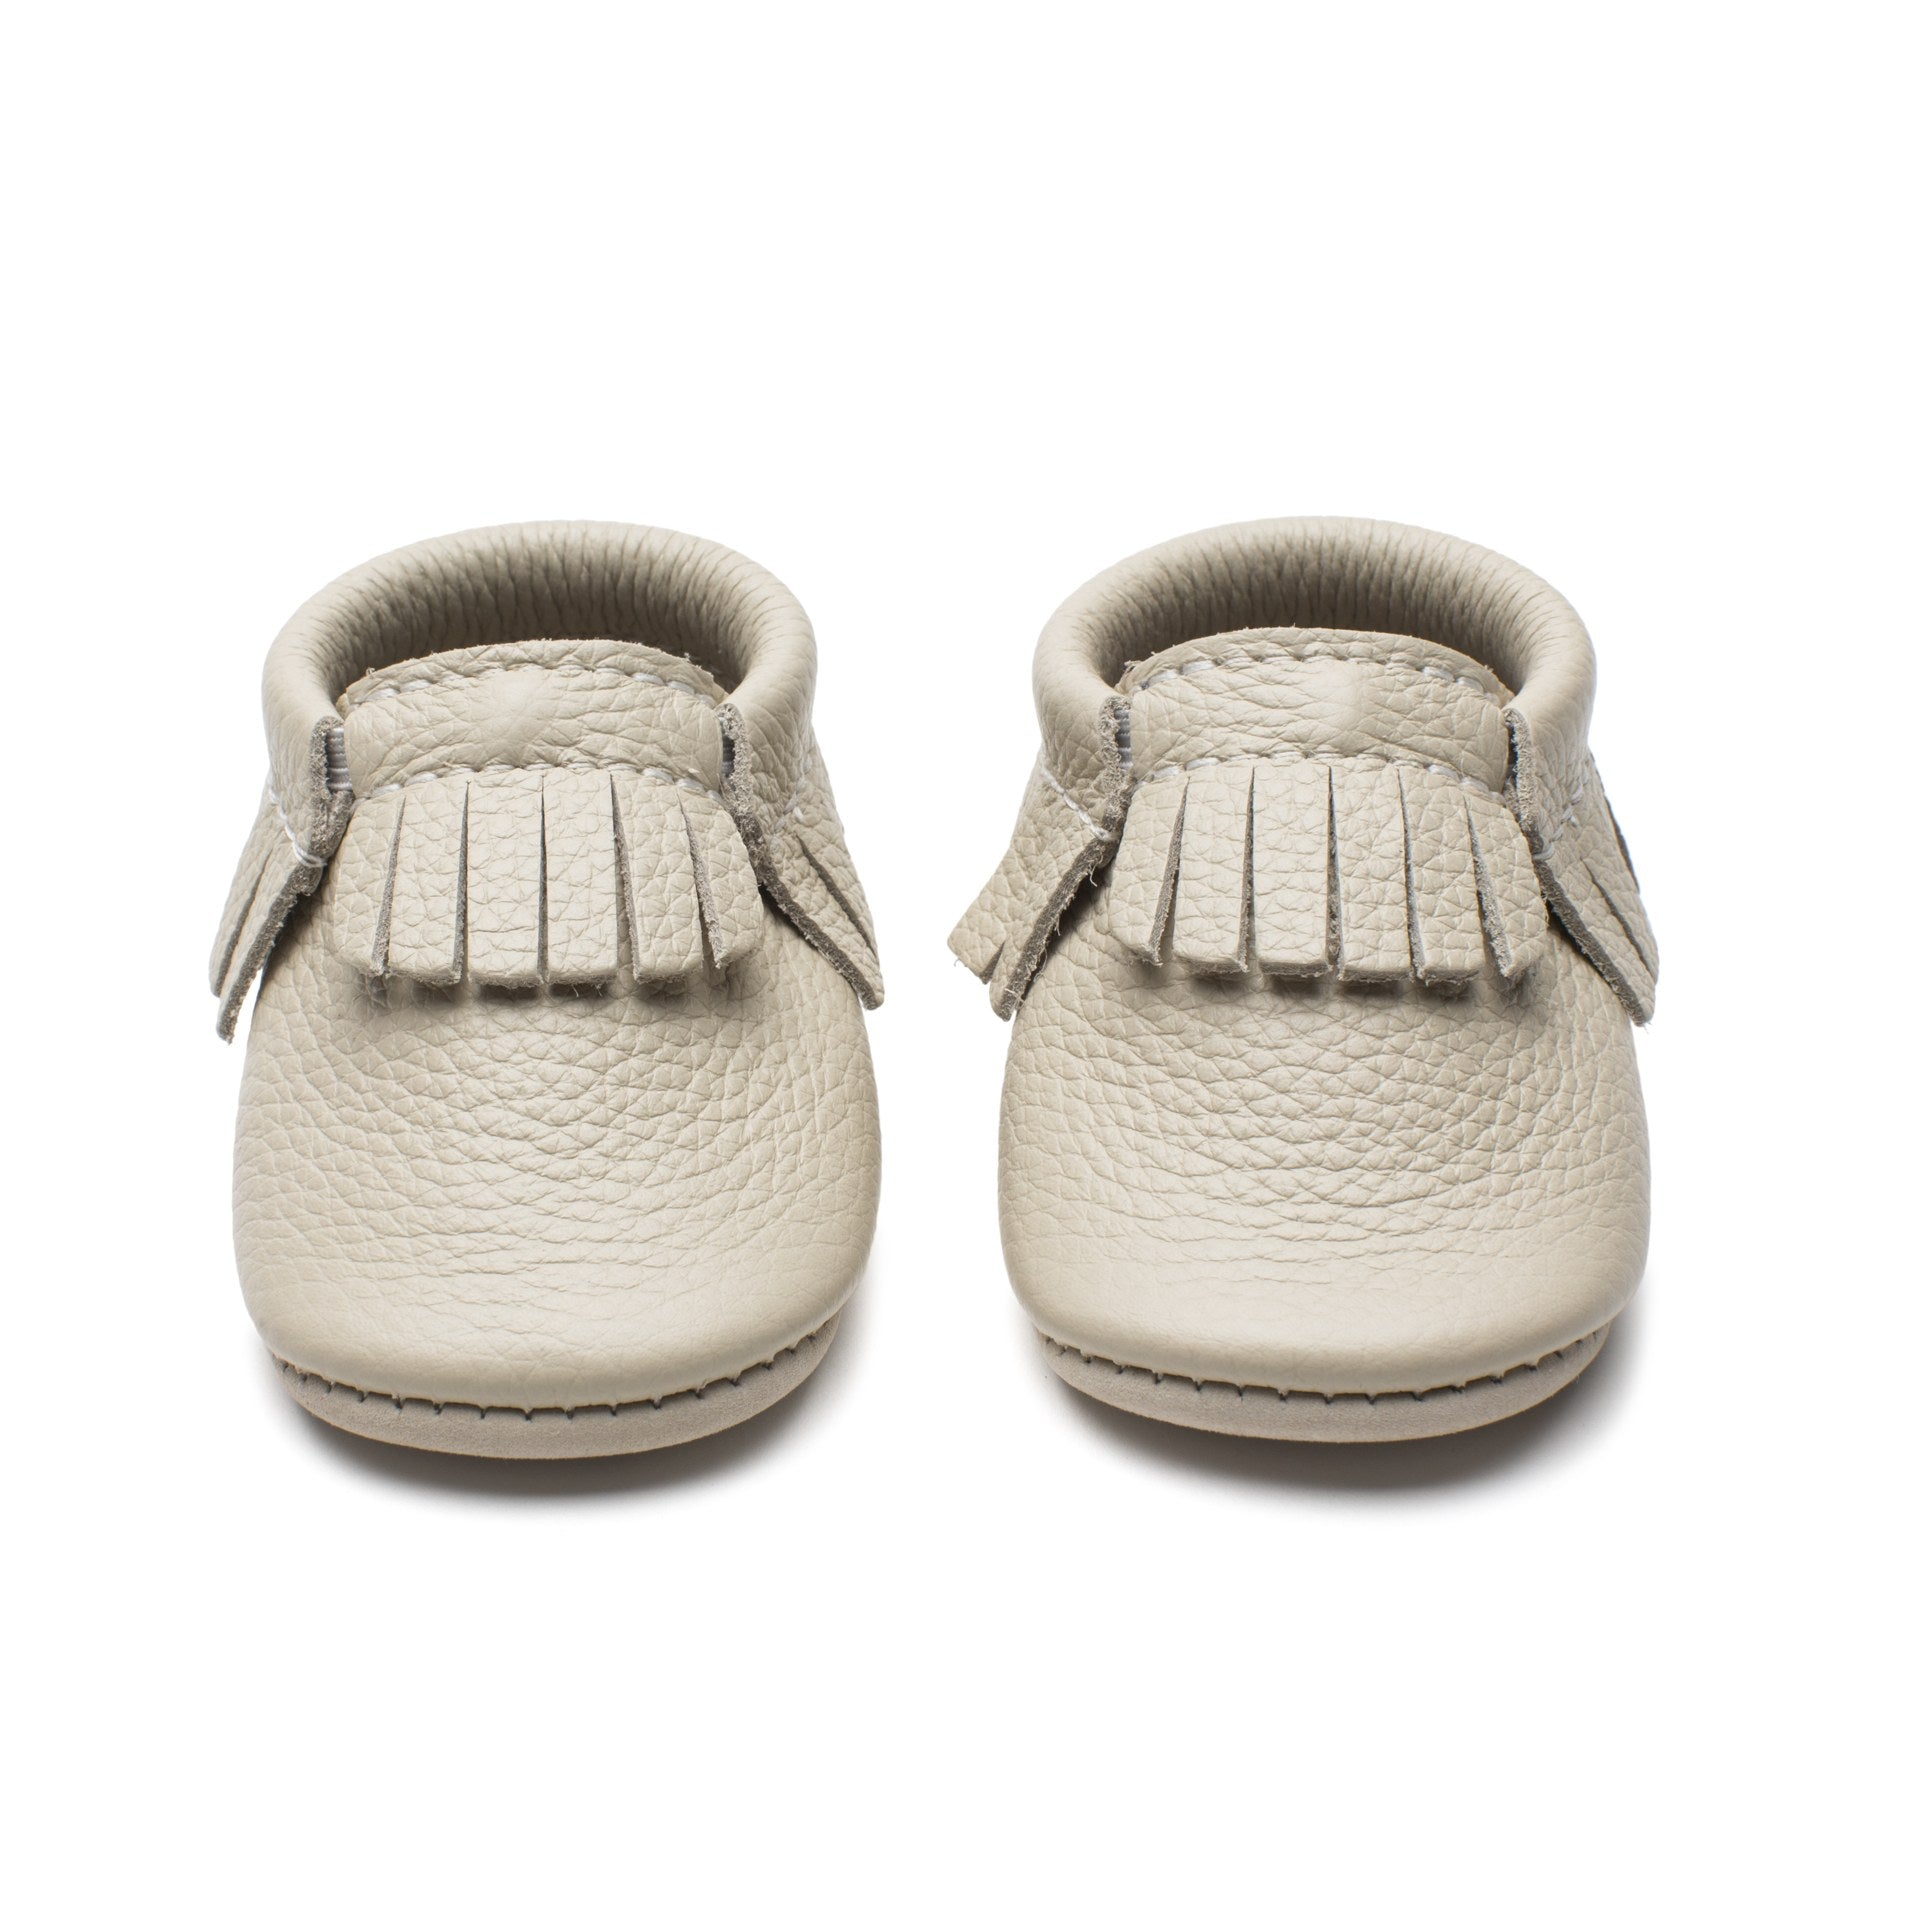 Trendy Leather Baby Moccasins at Bonjour Baby Baskets